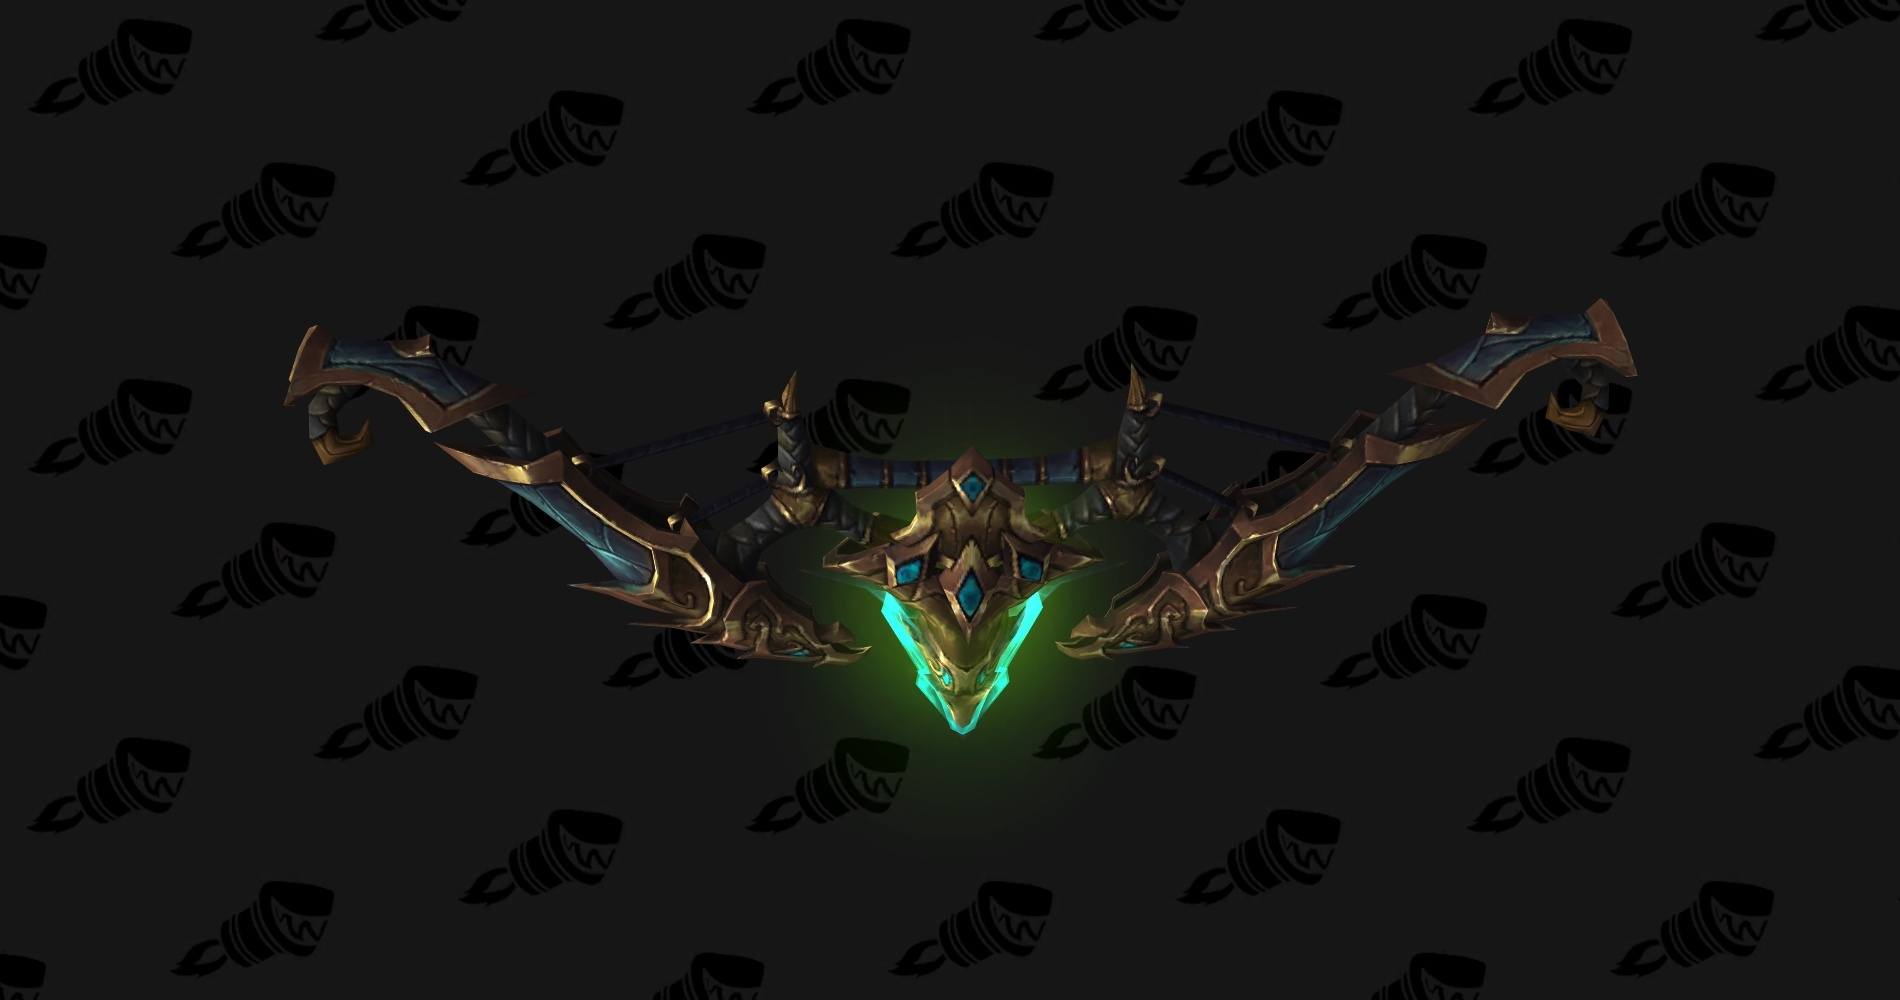 Wowhead artifact weapons hidden appearances guide